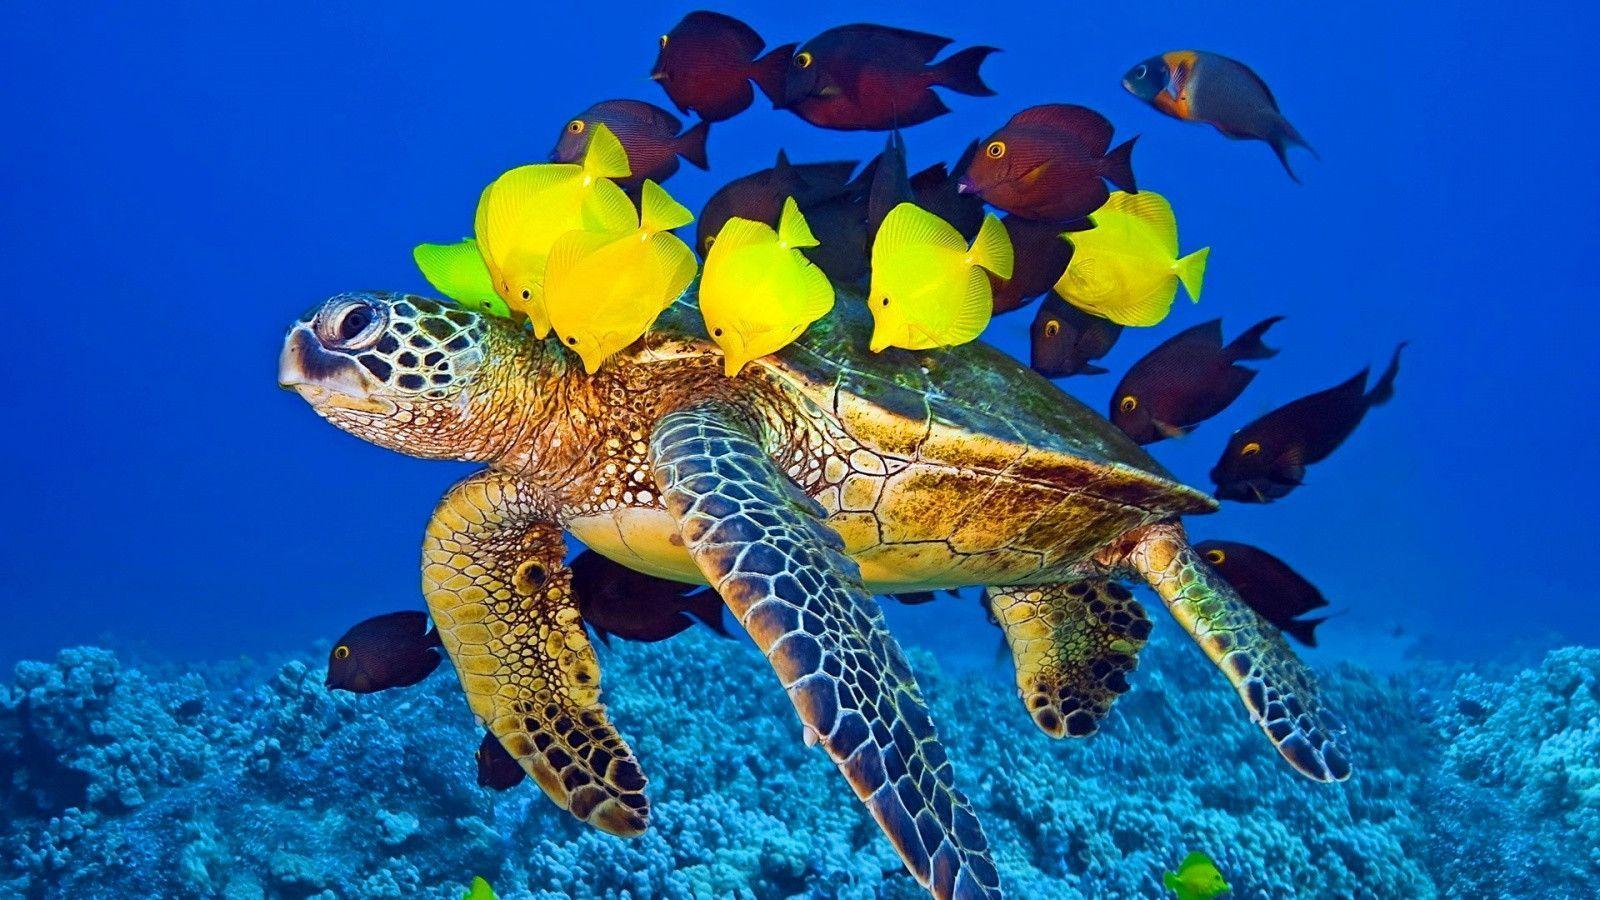 Sea Turtle Fish Wallpapers 1600x900 px Free Download